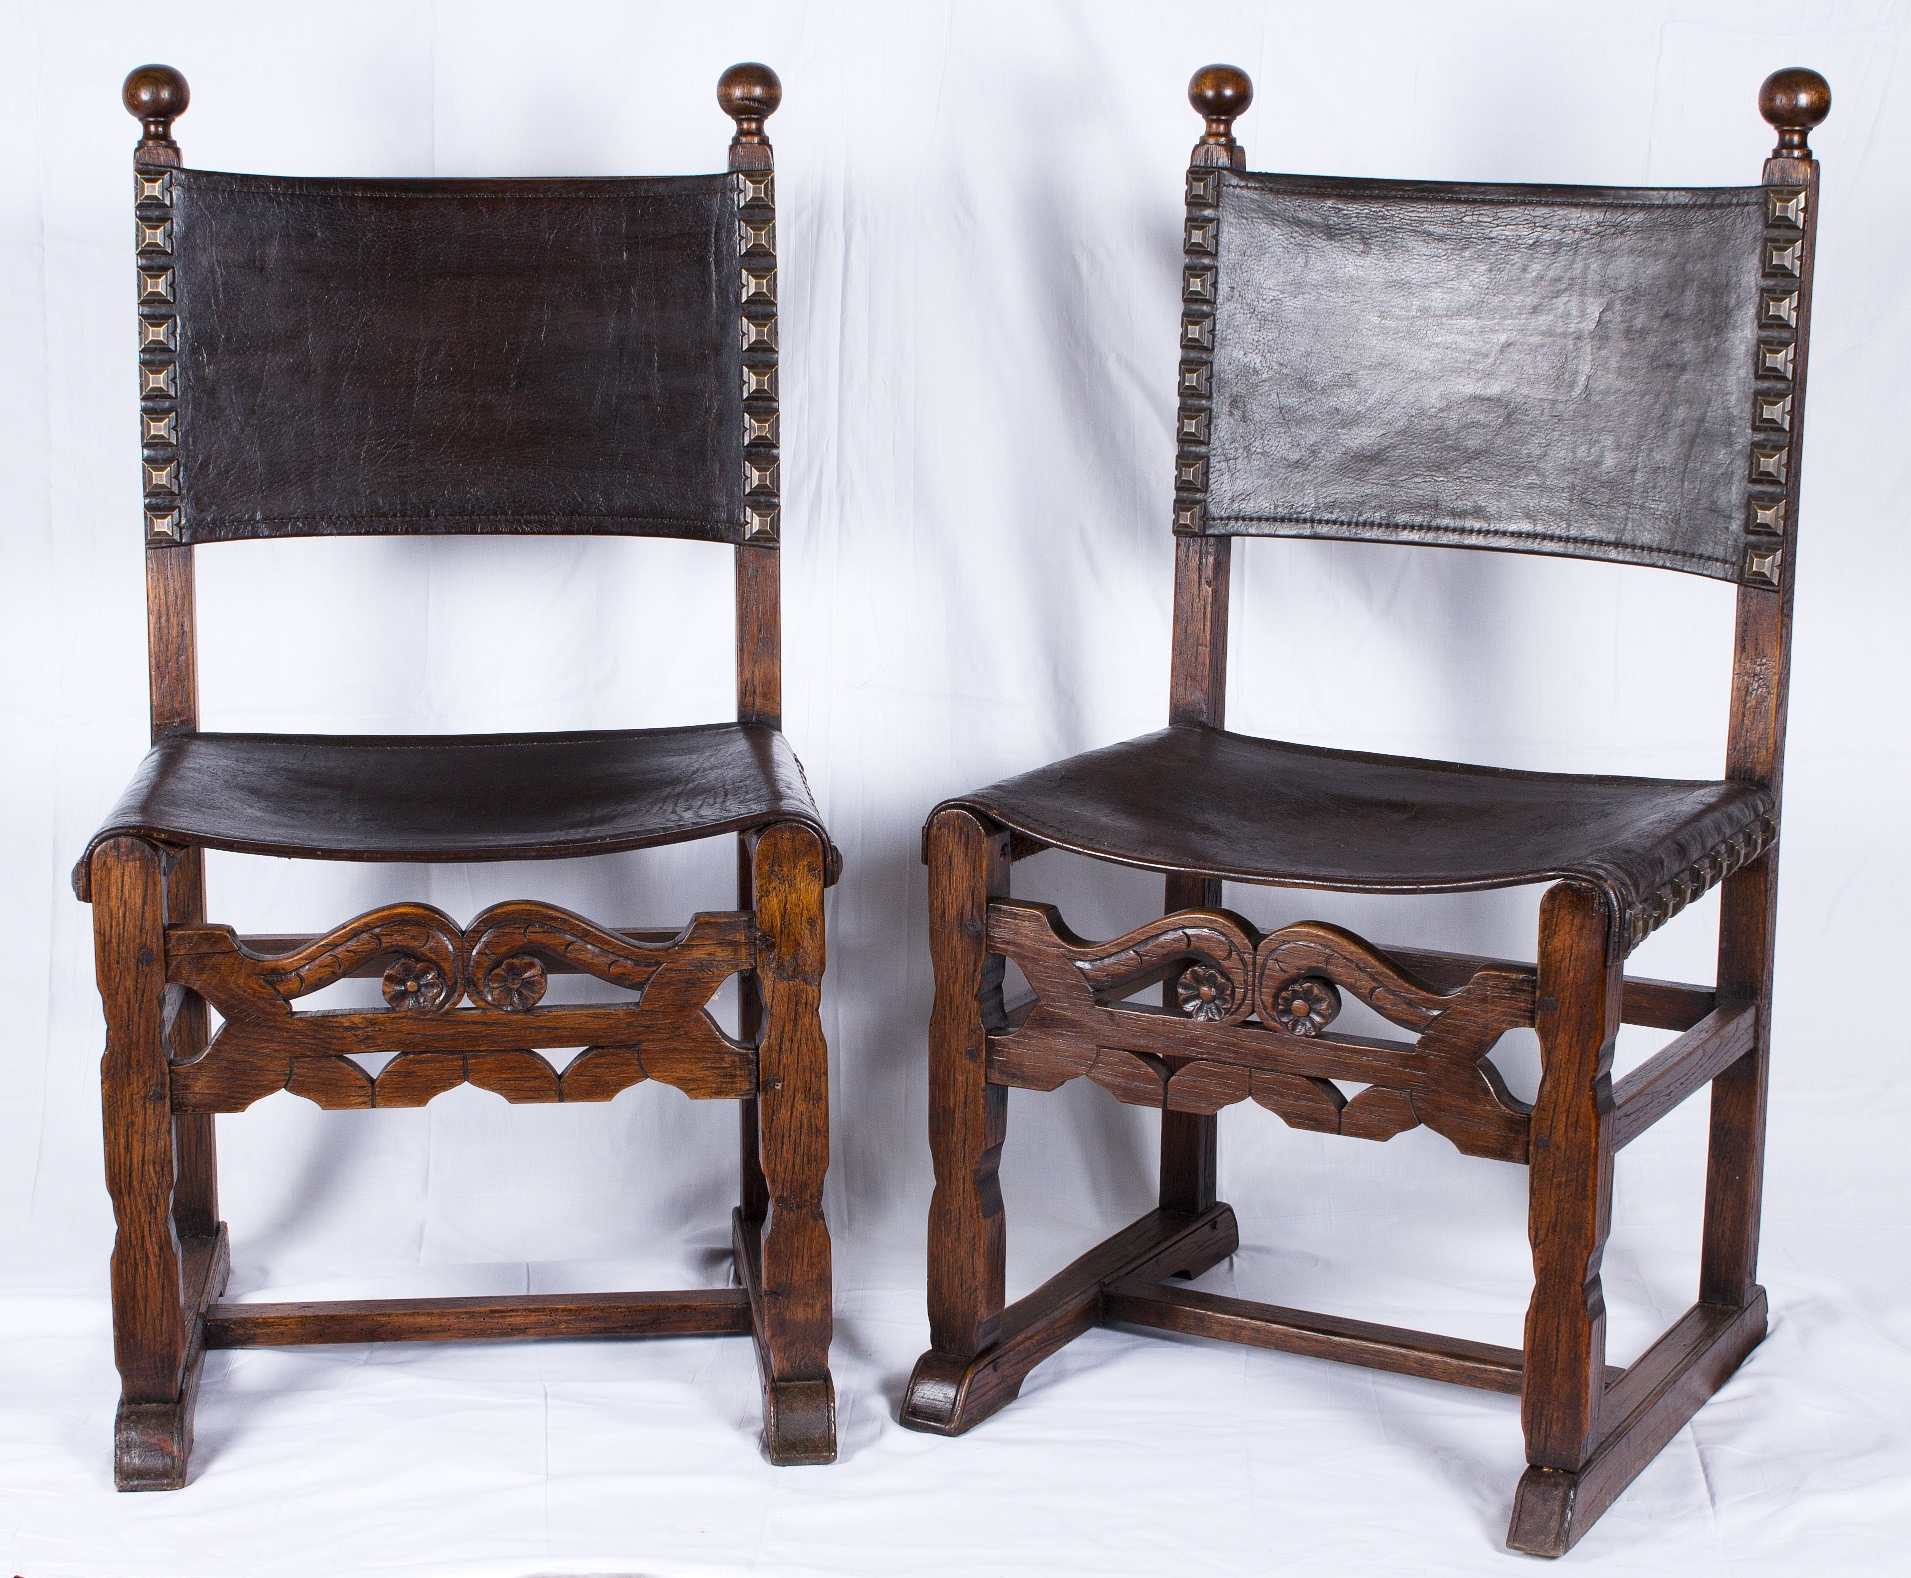 chairs_wood-leather_0331